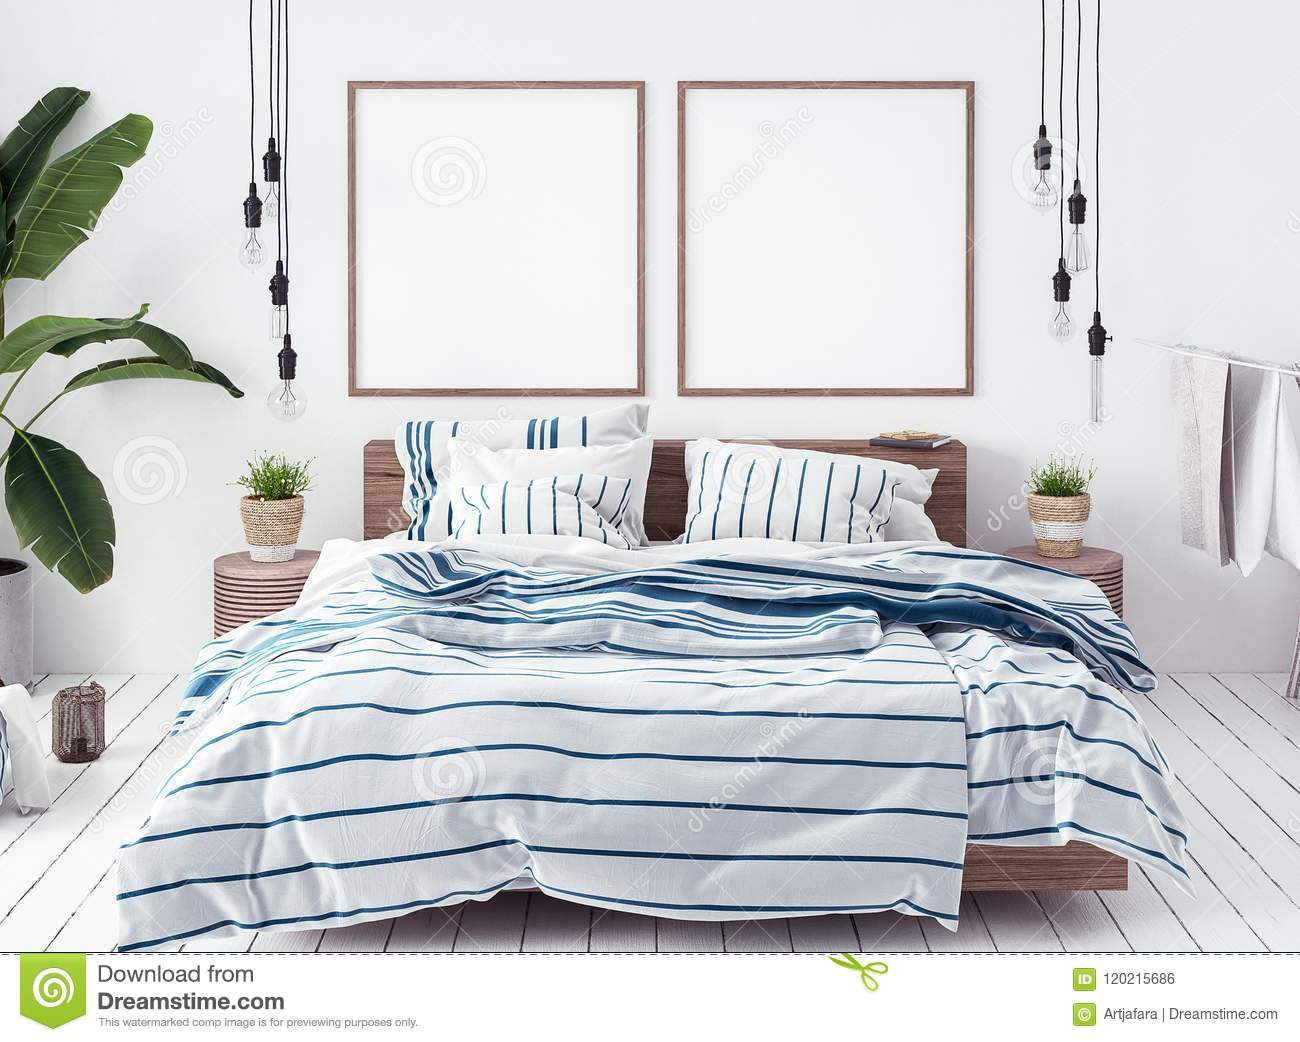 Boho Bedroom Posters Mock Up In New Scandinavian Boho Bedroom Stock Photo